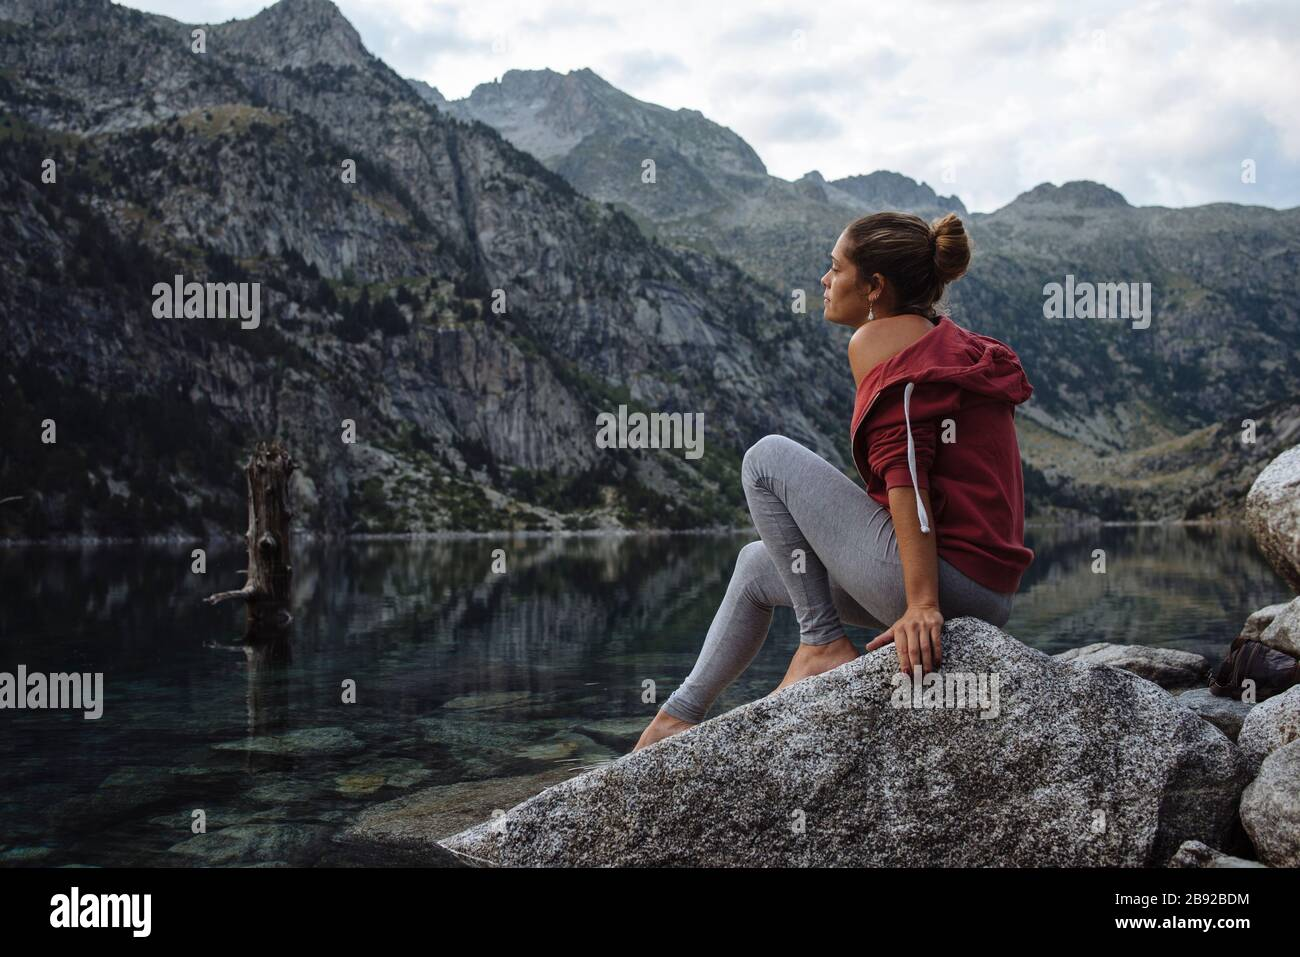 Woman with bun sitting on a rock by a lake during a trip. Stock Photo